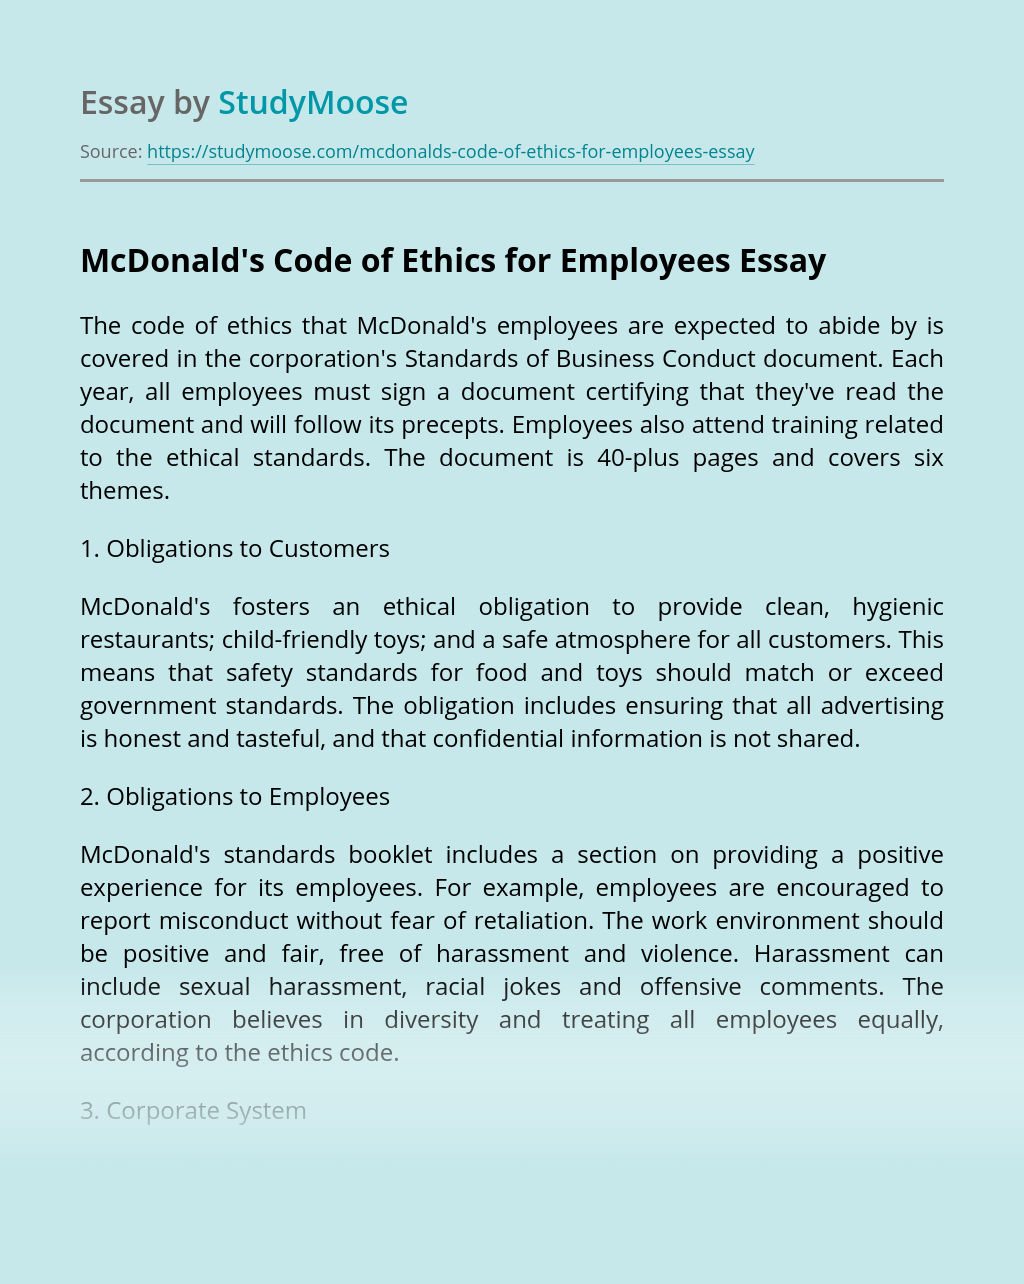 McDonald's Code of Ethics for Employees